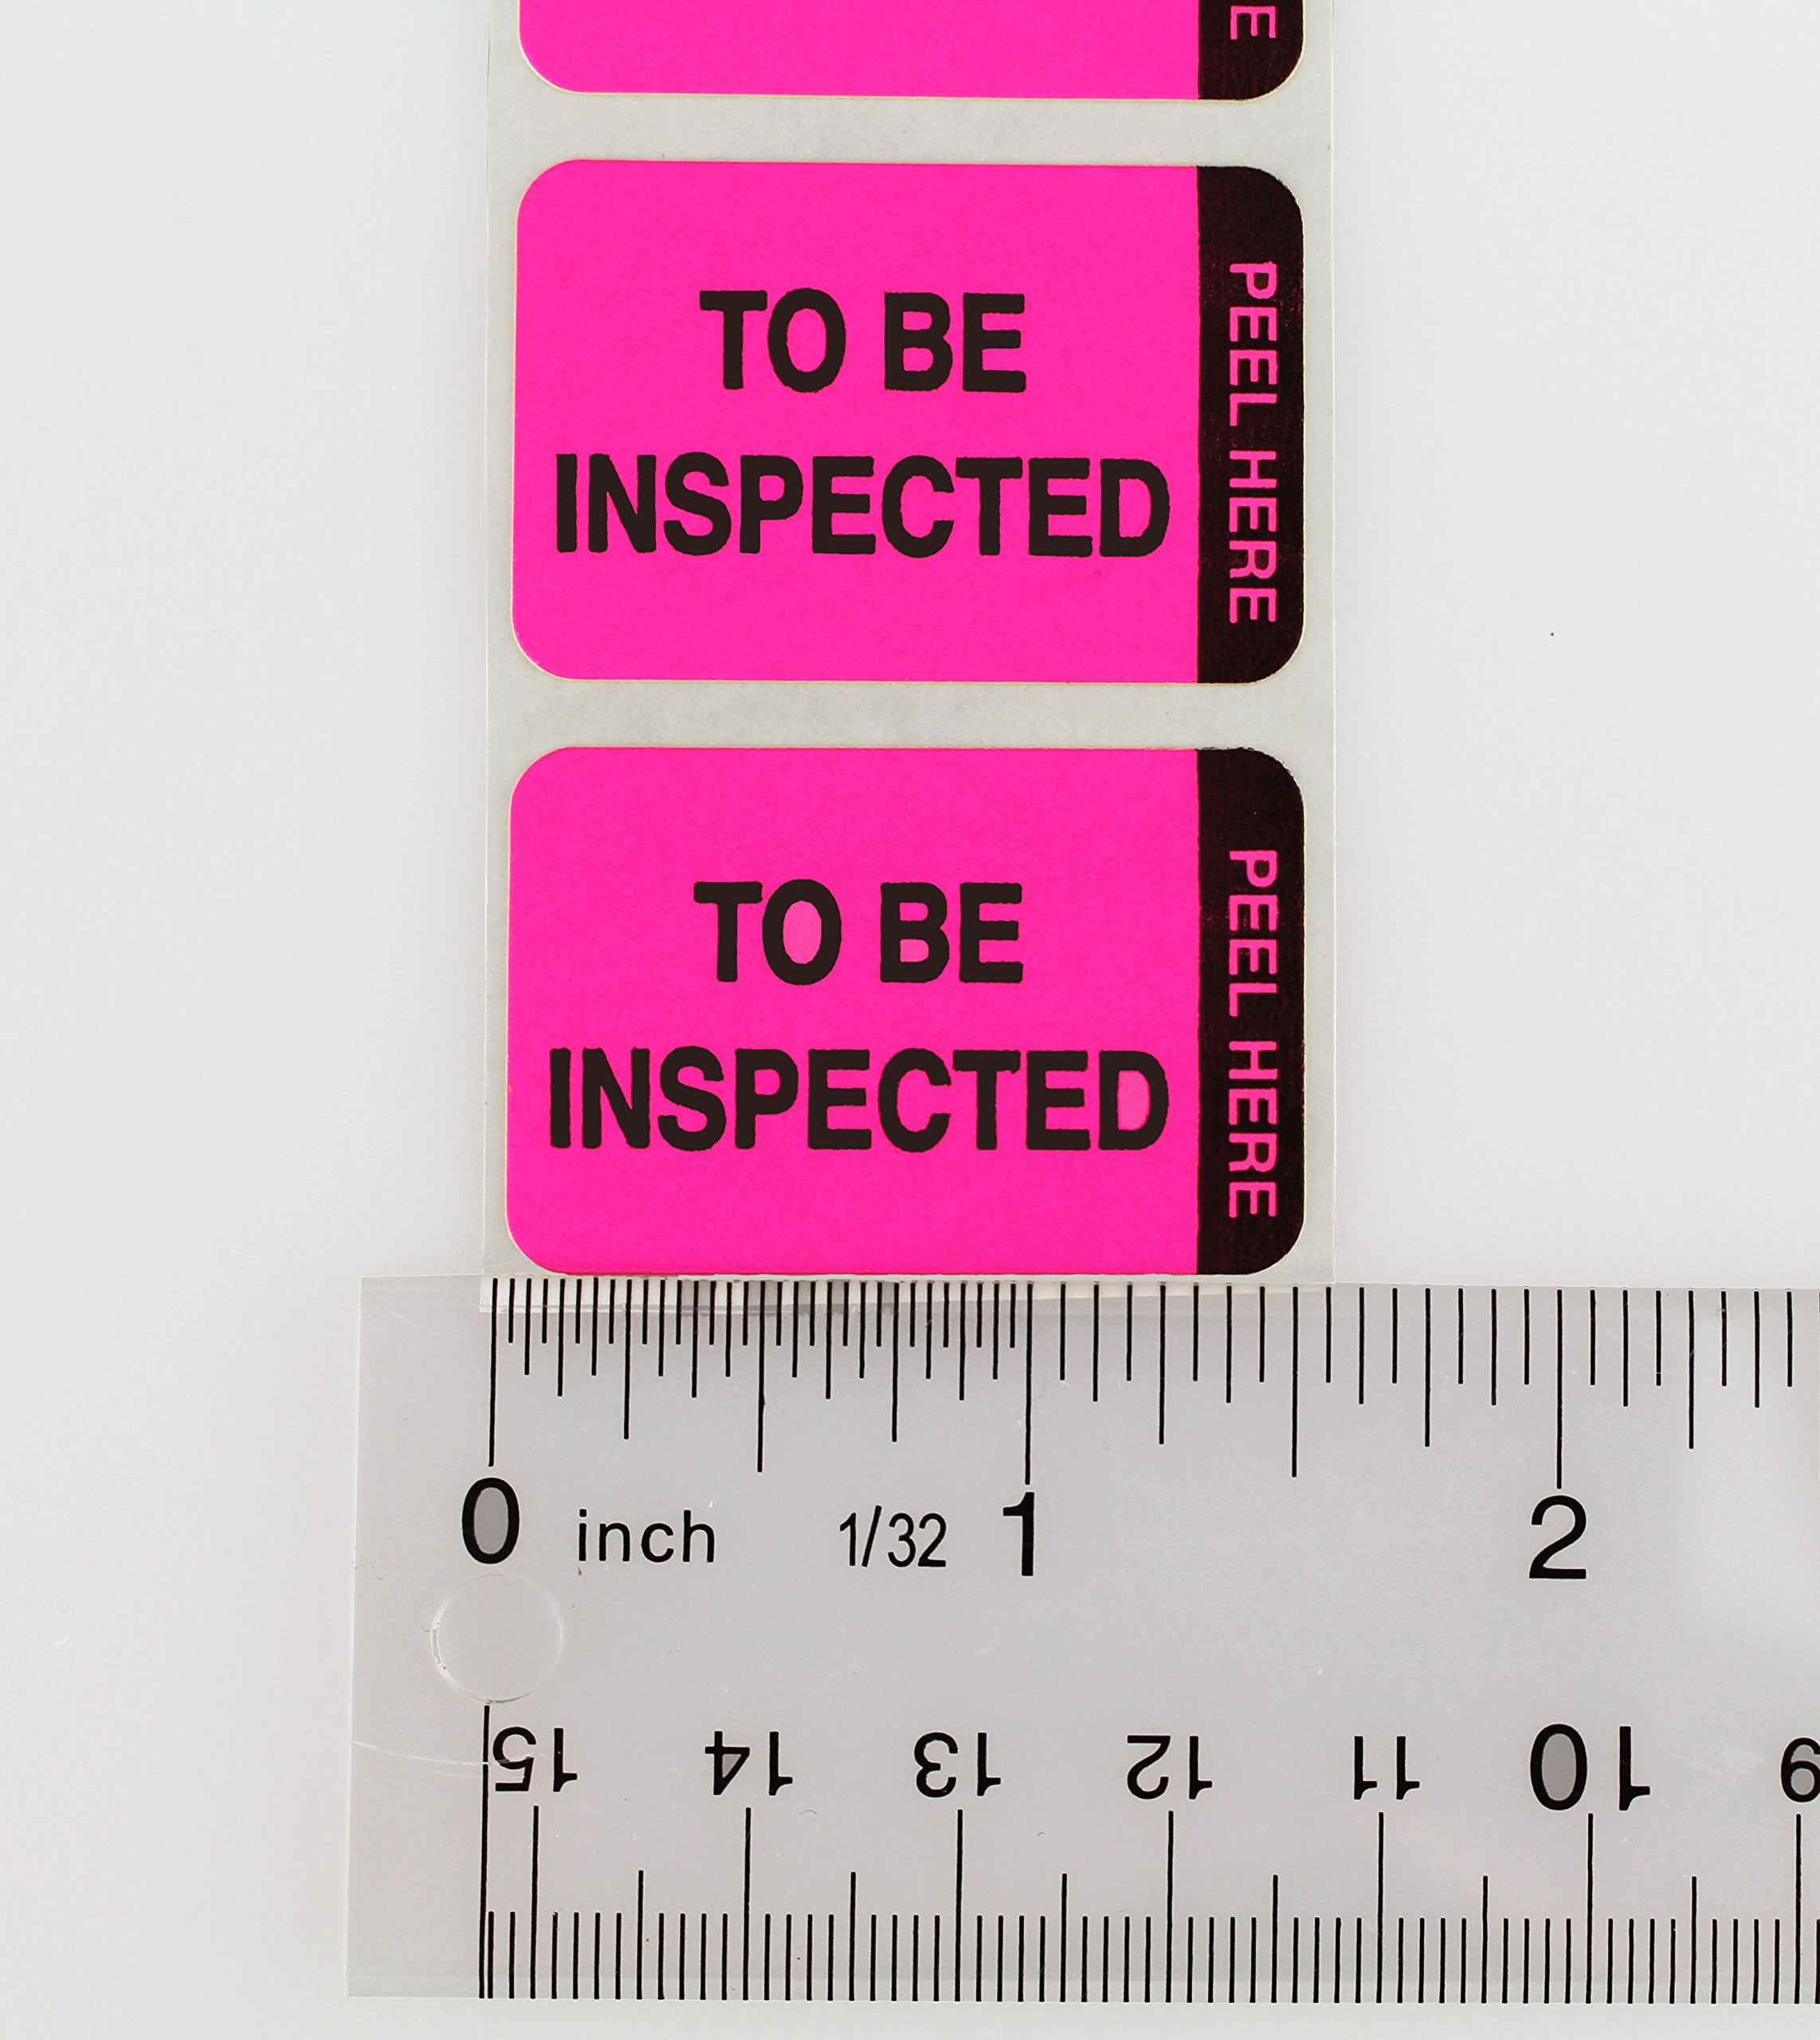 ChromaLabel 1 x 1-1/2 inch Fluorescent Pink/Yellow Double Layer QC Label | 'To Be Inspected/Inspected' Imprint | 250/Dispenser Box by ChromaLabel (Image #7)